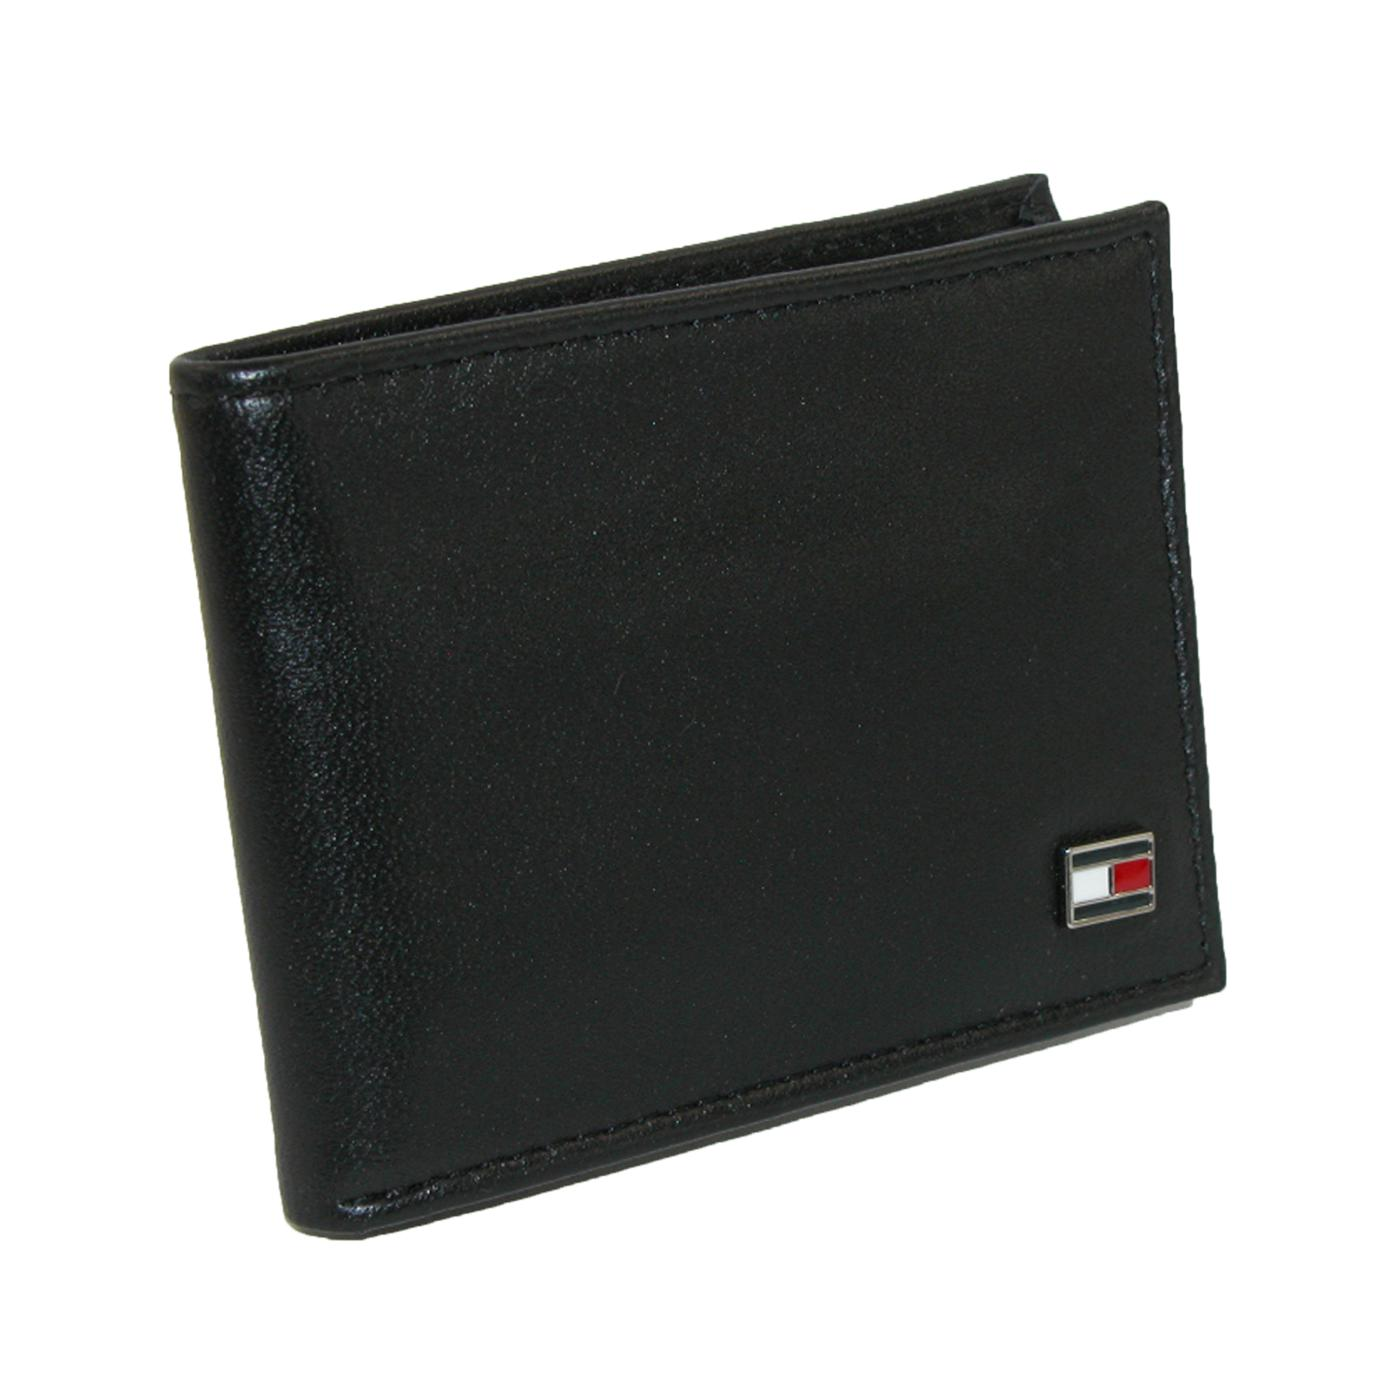 Leather Wallet Manufacturers in Chennai We are the Best Leather Wallet Manufacturers in Chennai